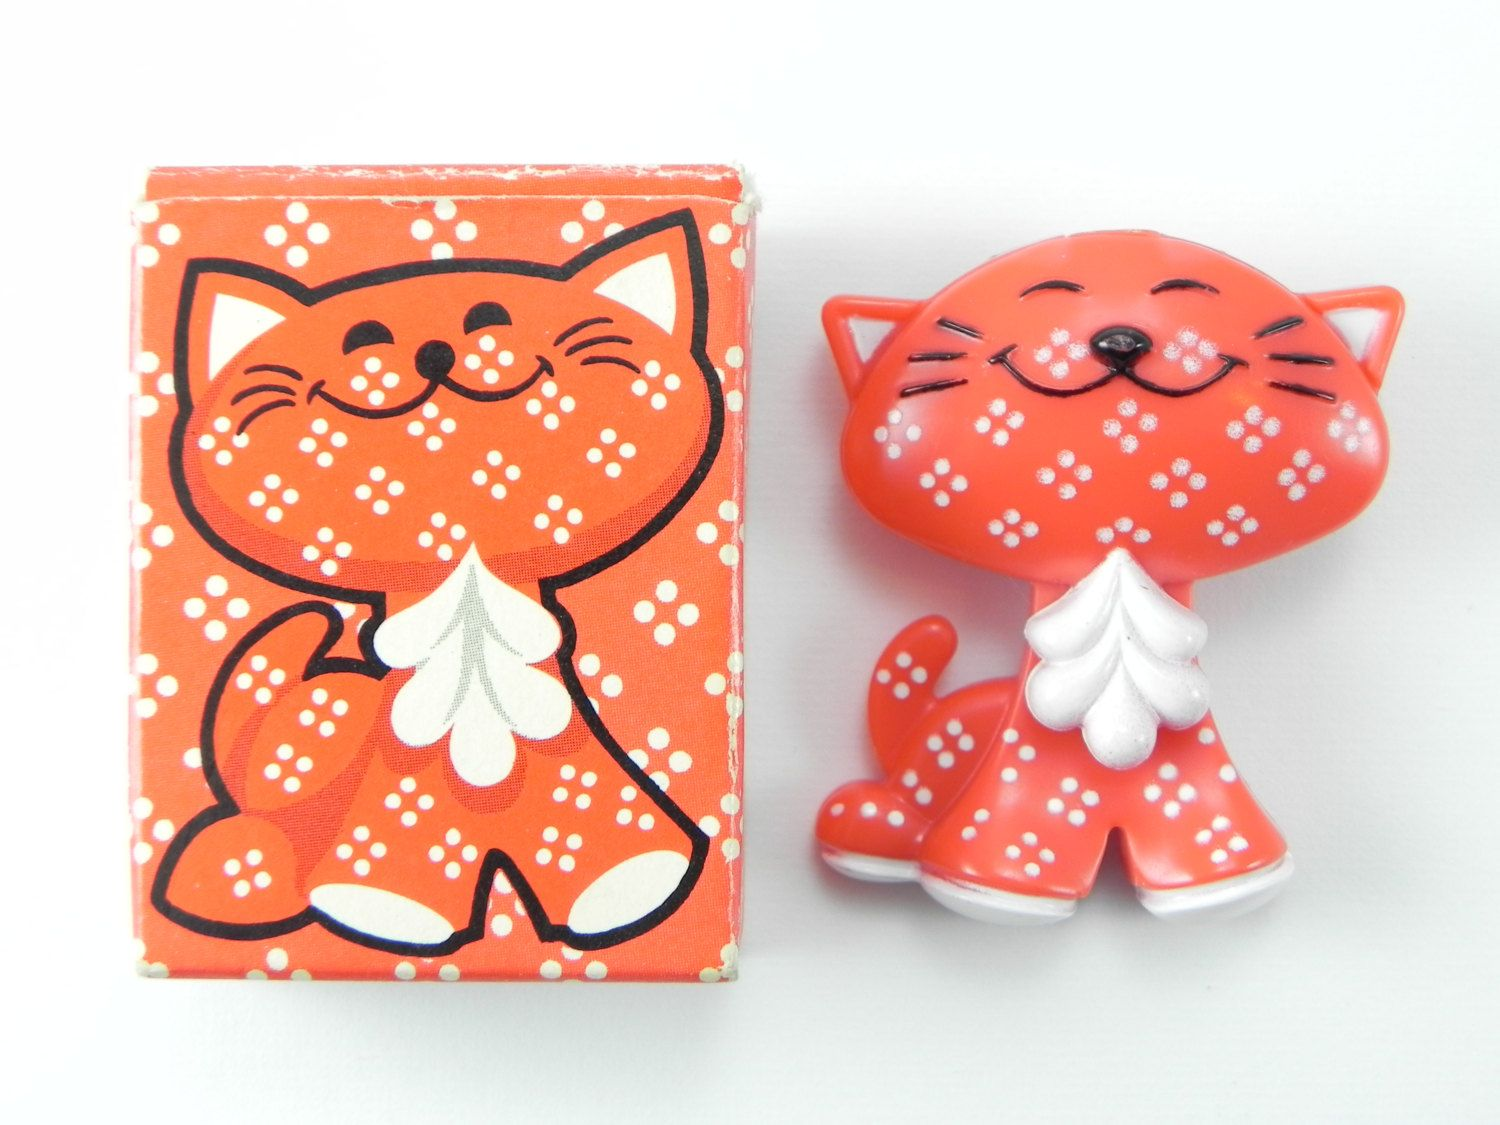 Vintage Avon Calico Cat Pin Pal Fragrance Glace 70 S New In Box Never Used Unique Kids Collectible Shirt Pin Red Orange Ki Avon Collectibles Retro Vintage Avon